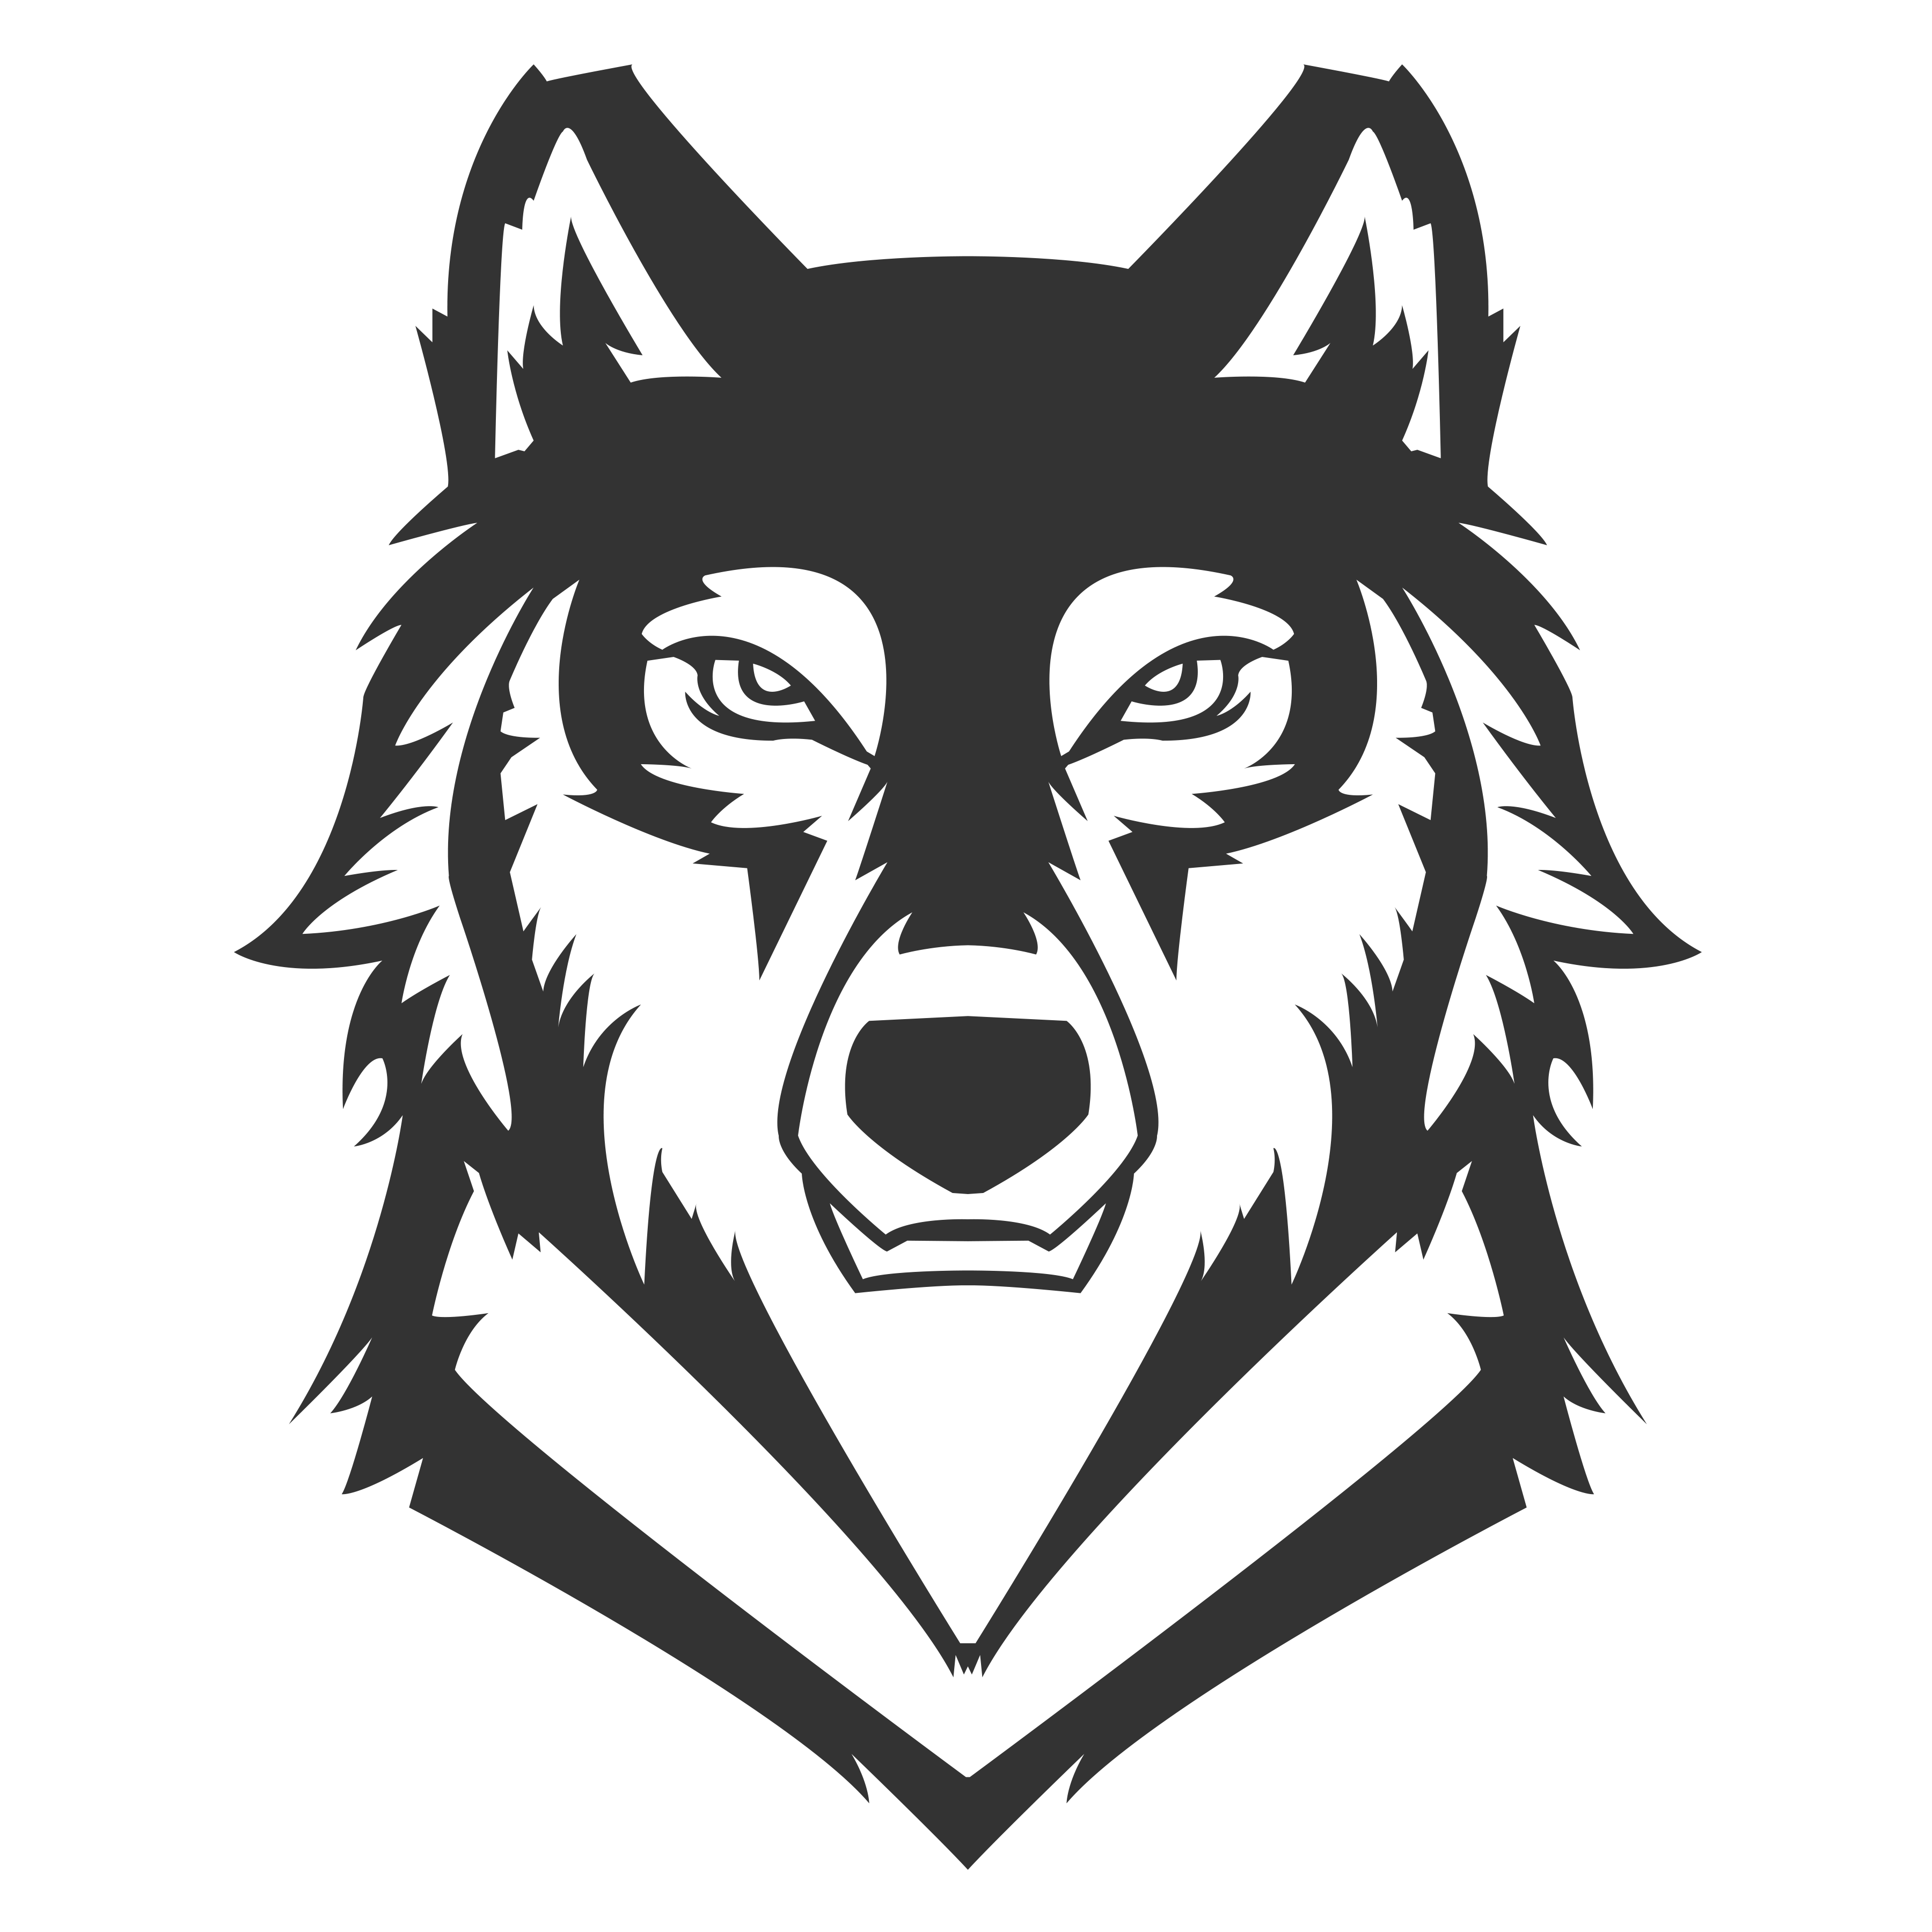 Lobo vector. Png transparent images pluspng